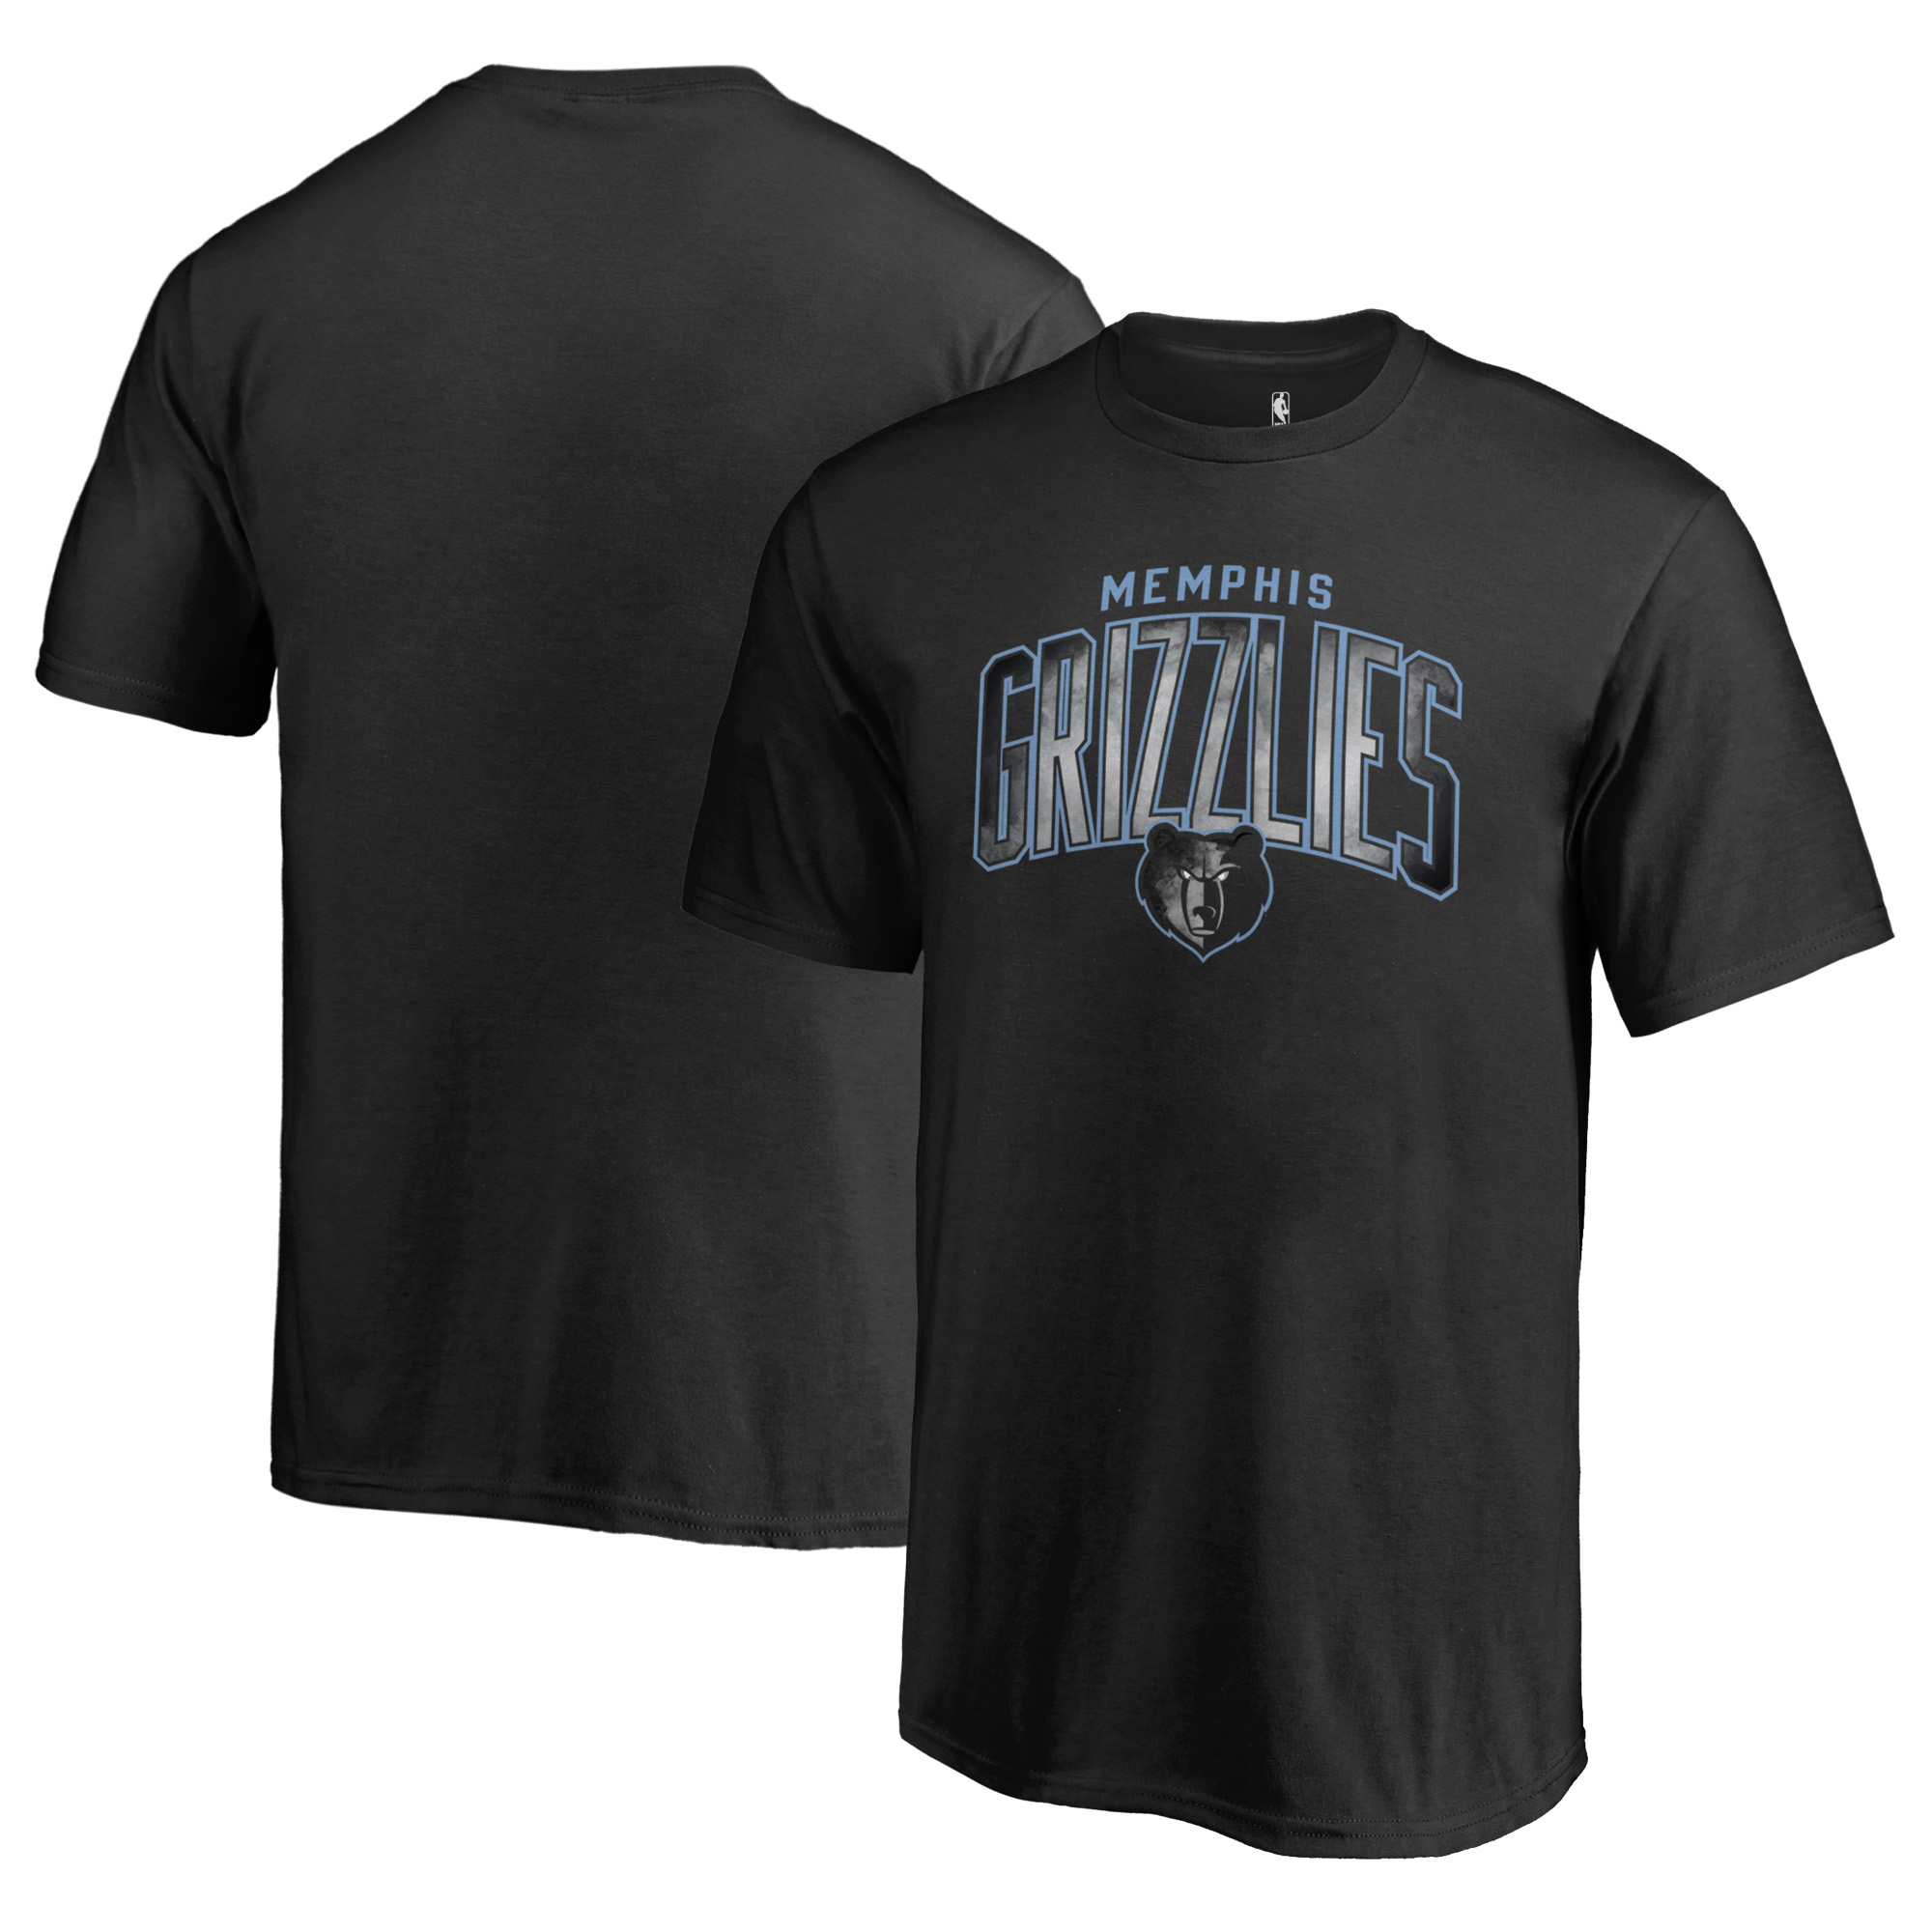 Memphis Grizzlies Fanatics Branded Youth Arch Smoke T-Shirt - Black